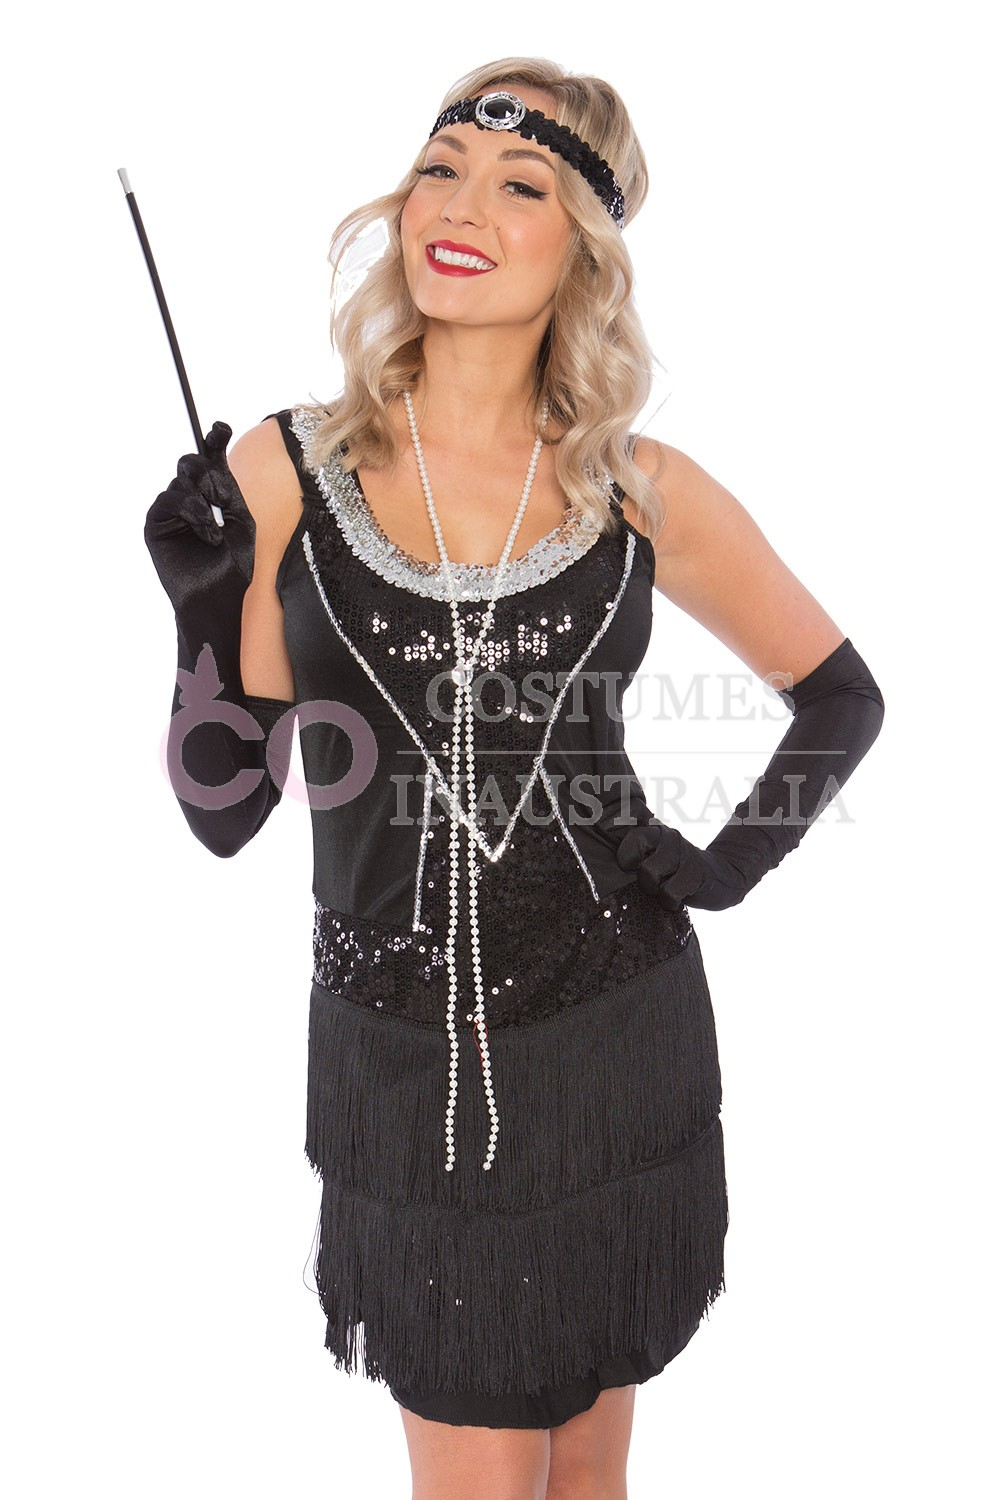 charleston black personals Find local singles in charleston, south carolina browse local singles at onlinebootycallcom helping you find local dating, real people, real friends, real booty.